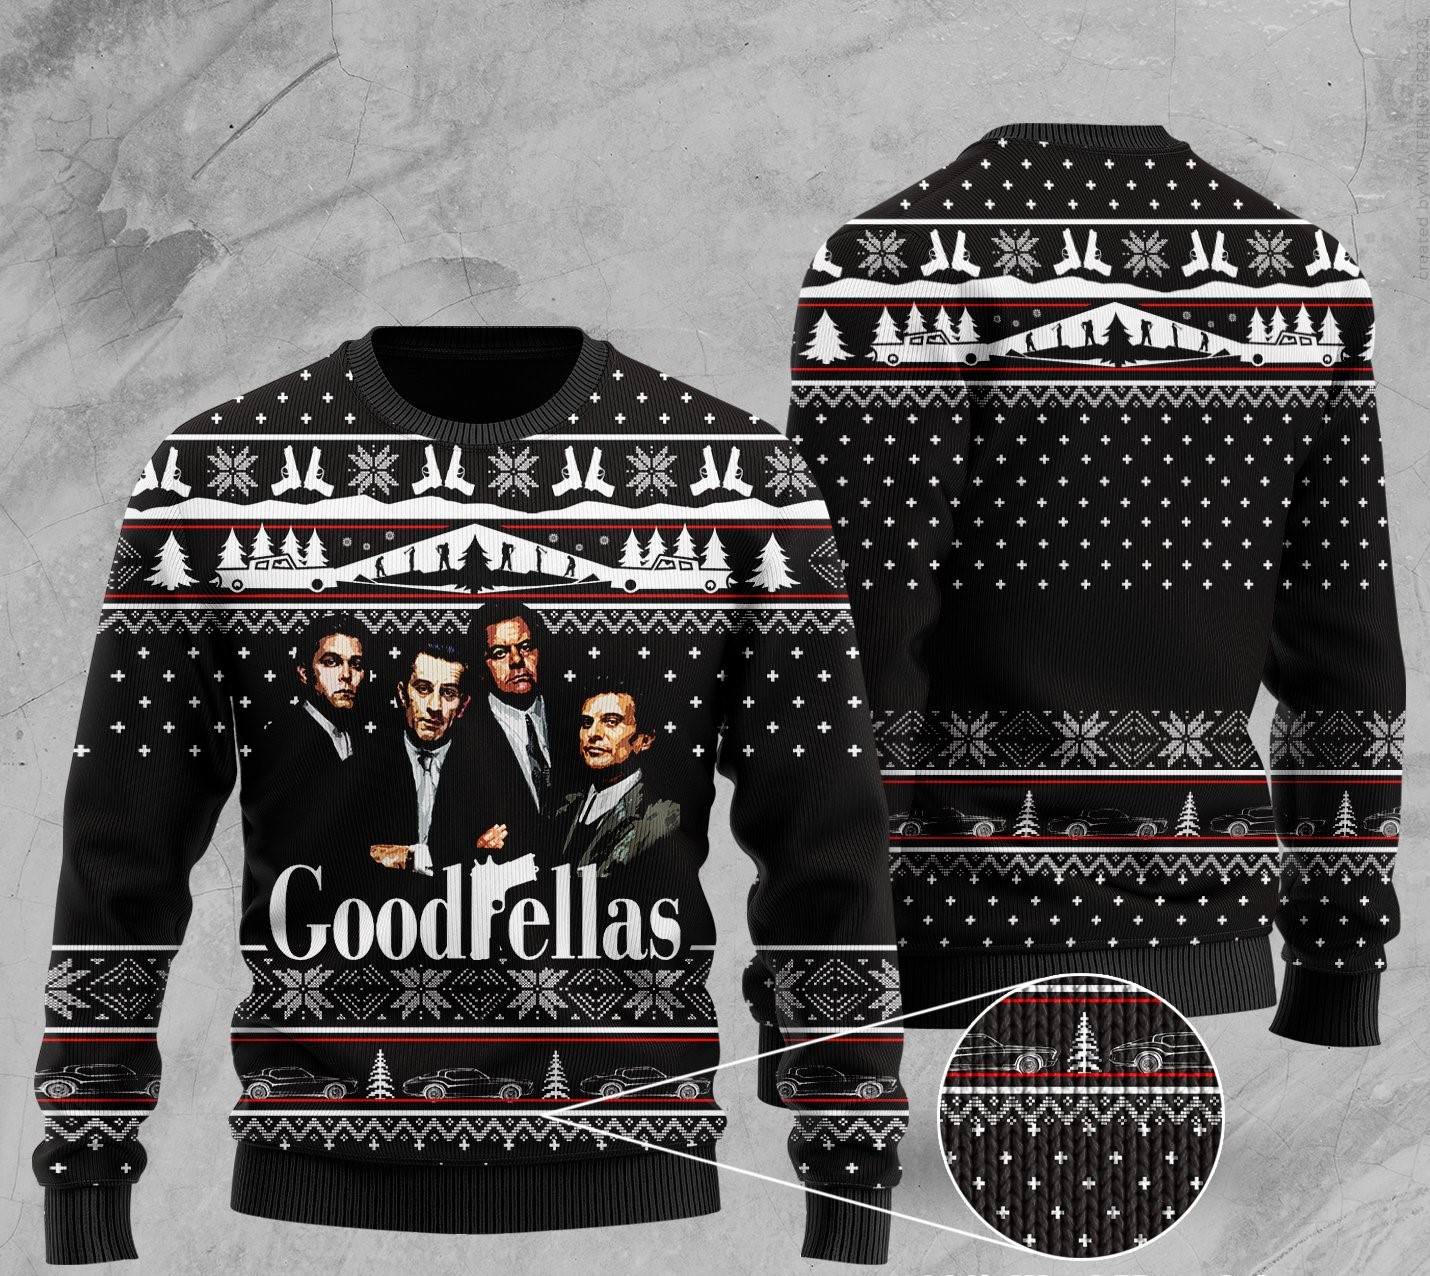 goodfellas all over printed ugly christmas sweater 2 - Copy